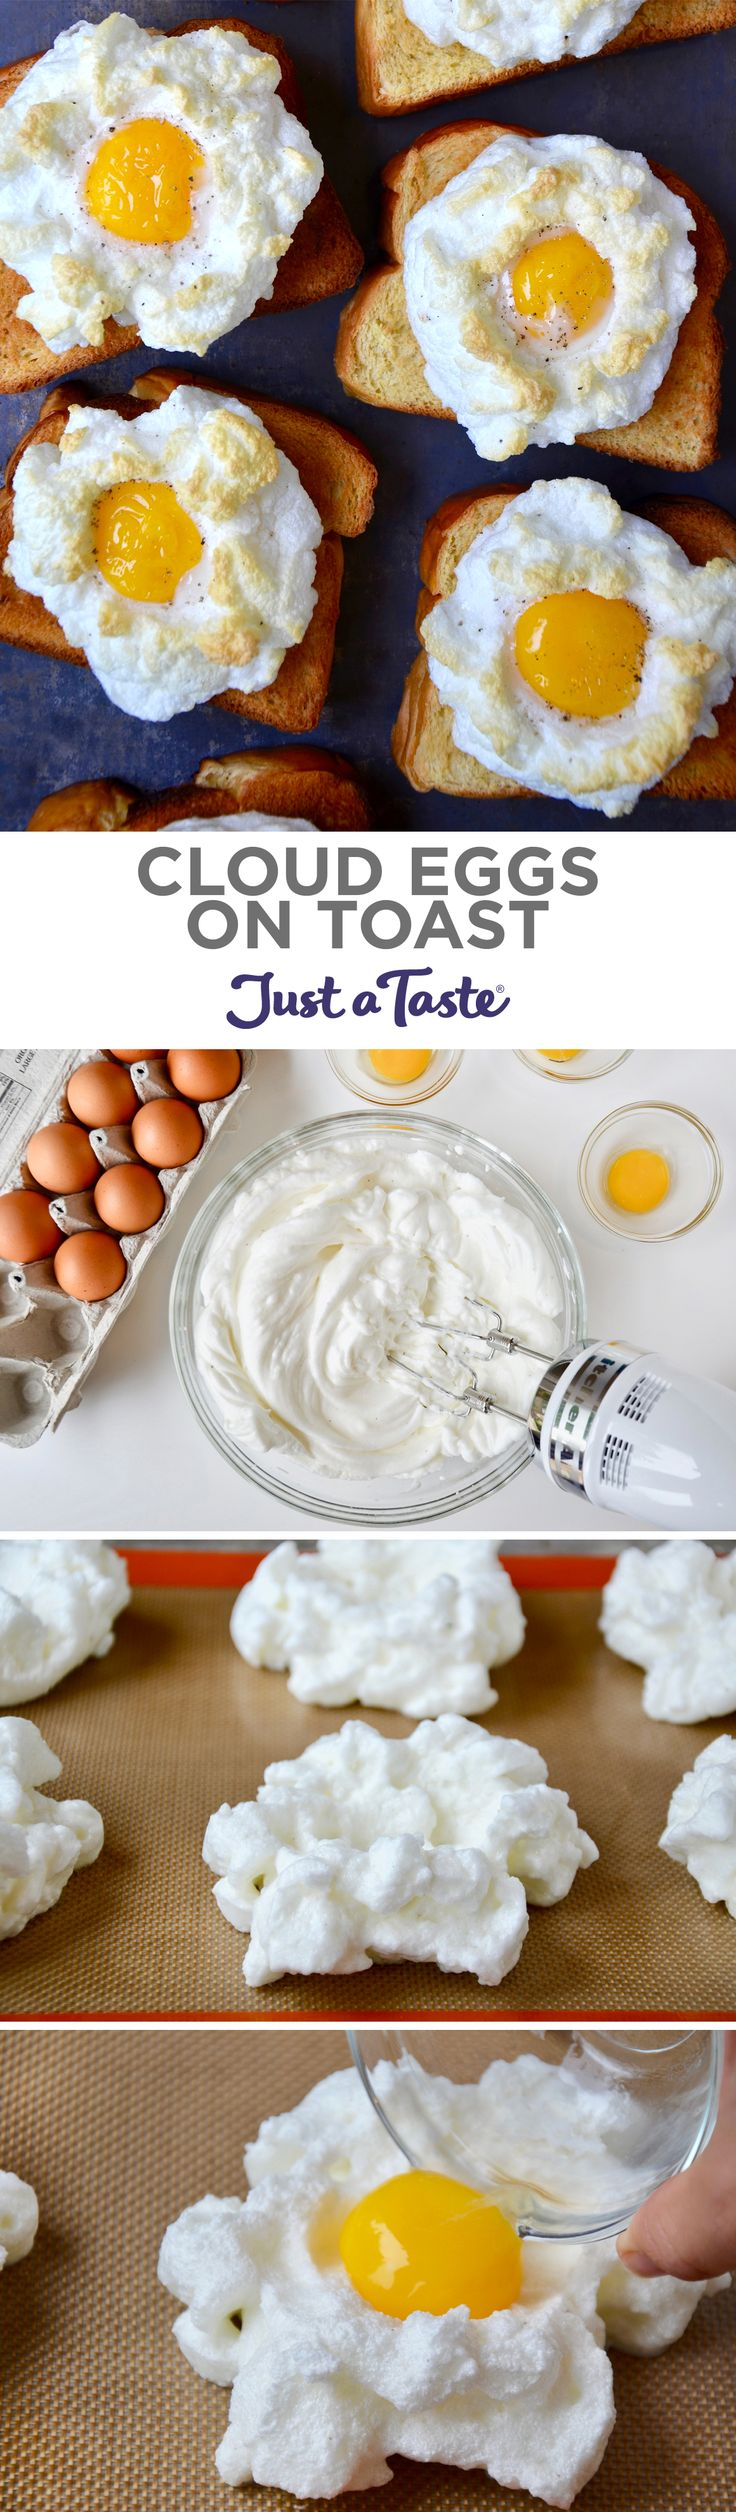 Cloud Eggs on Toast recipe from justataste.com #cloudeggs #recipe